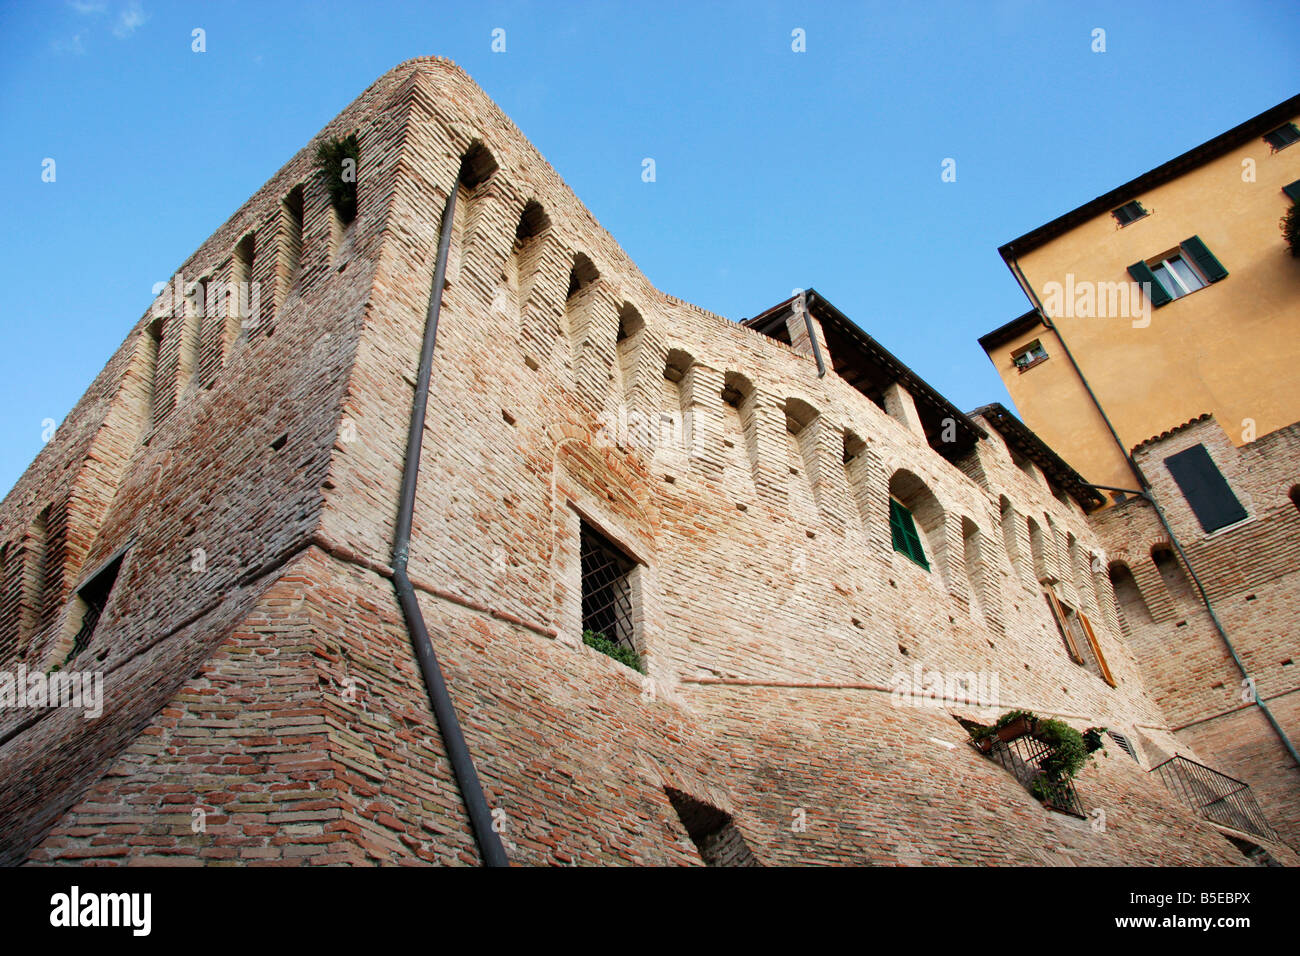 colorful house built on top of the historic walls of the beautiful hilltown of Jesi in Le Marche, Italy Stock Photo